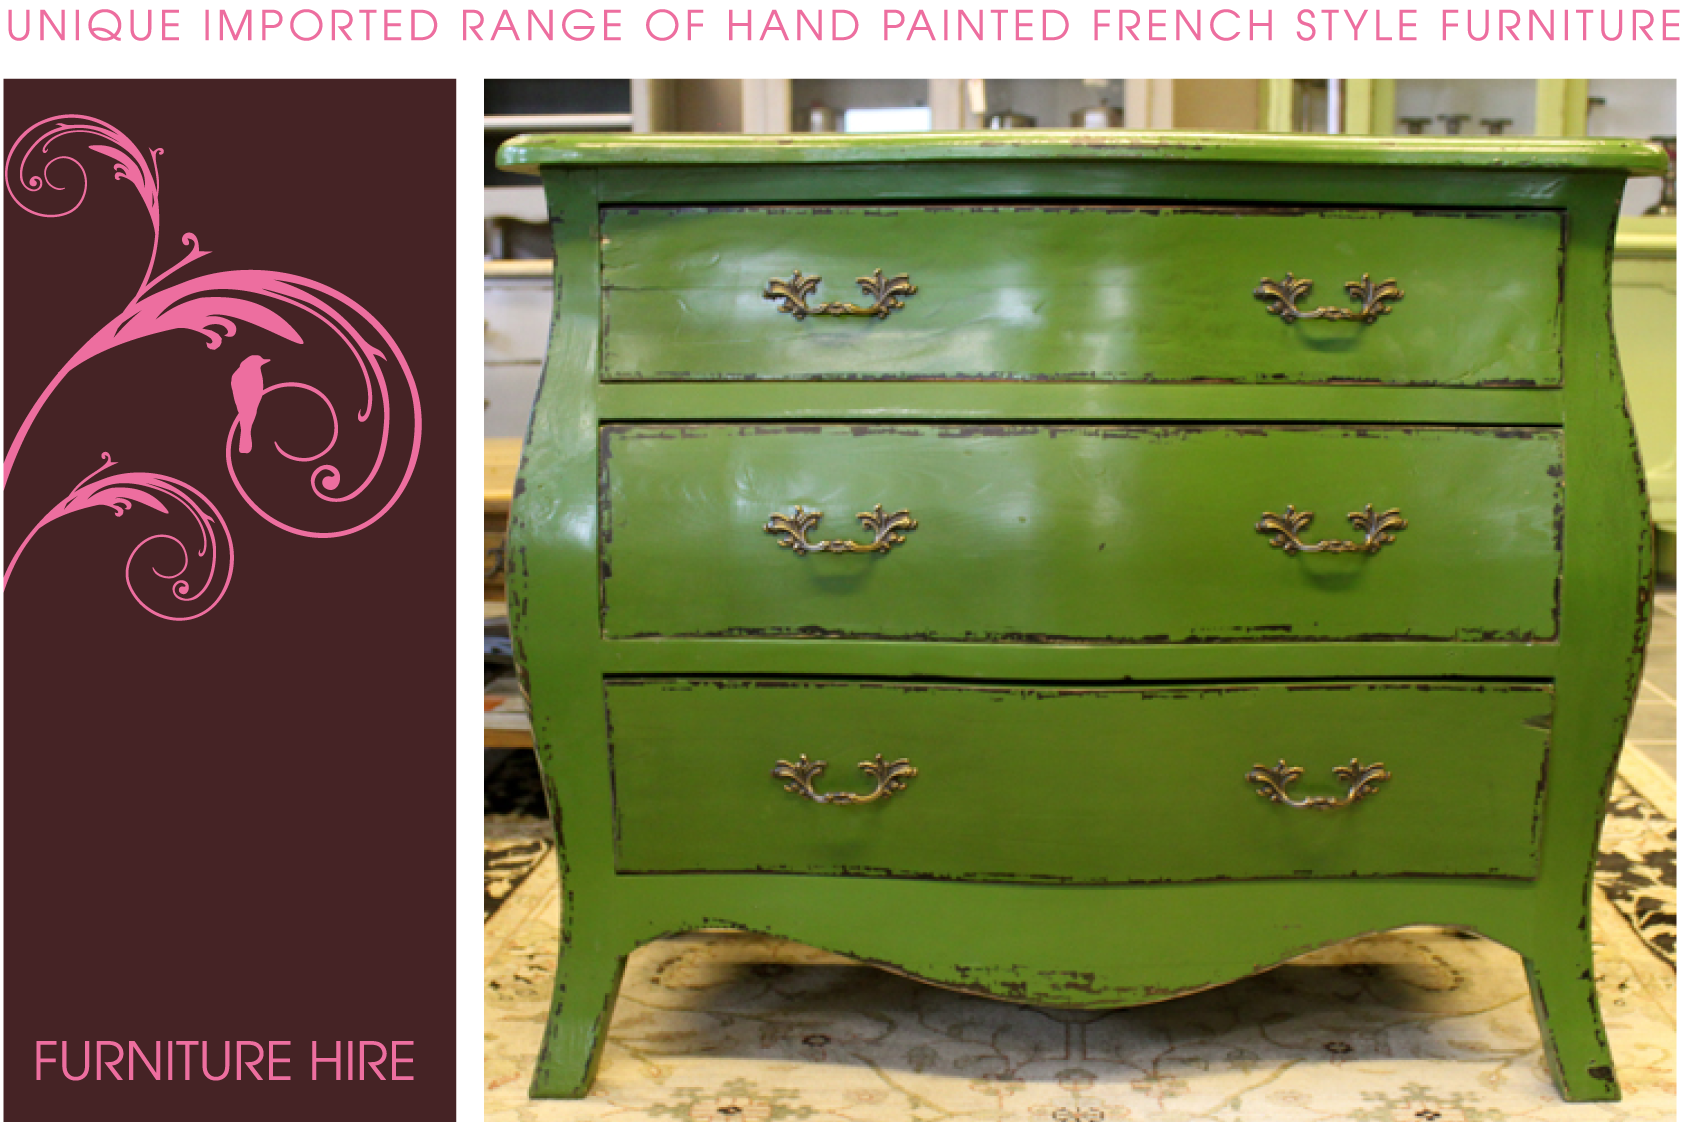 Furniture hire - Pictures of furniture ...